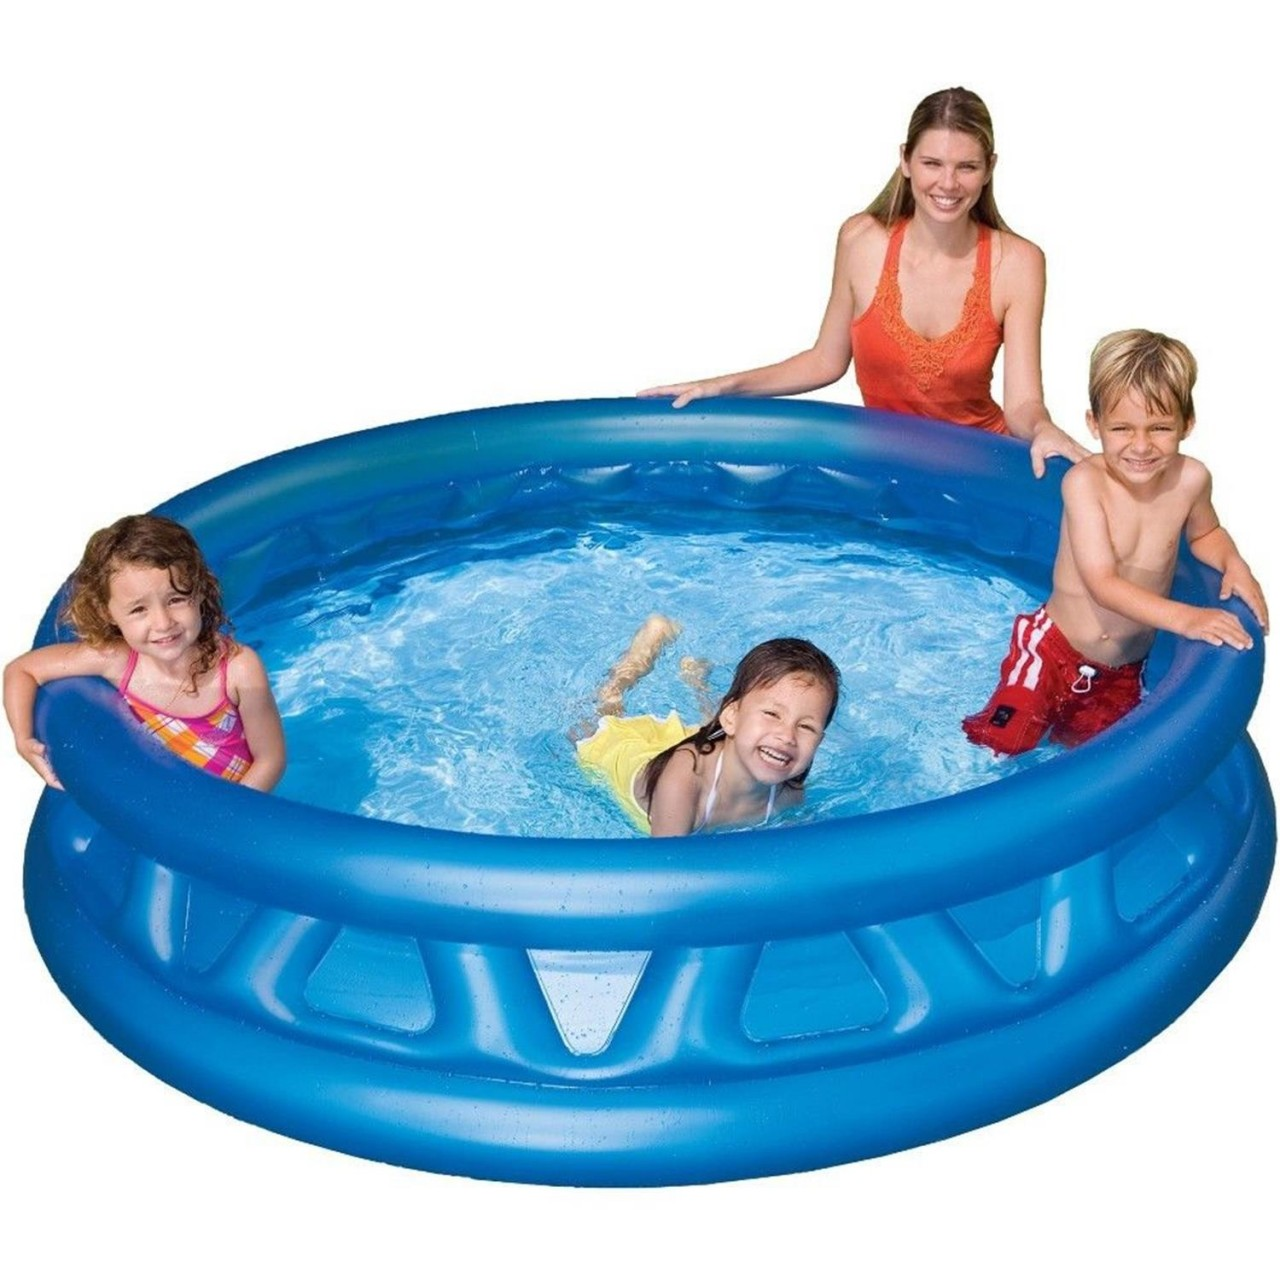 Intex 58431NP - Pool - Soft-Side, Durchmesser 188 x 46 cm